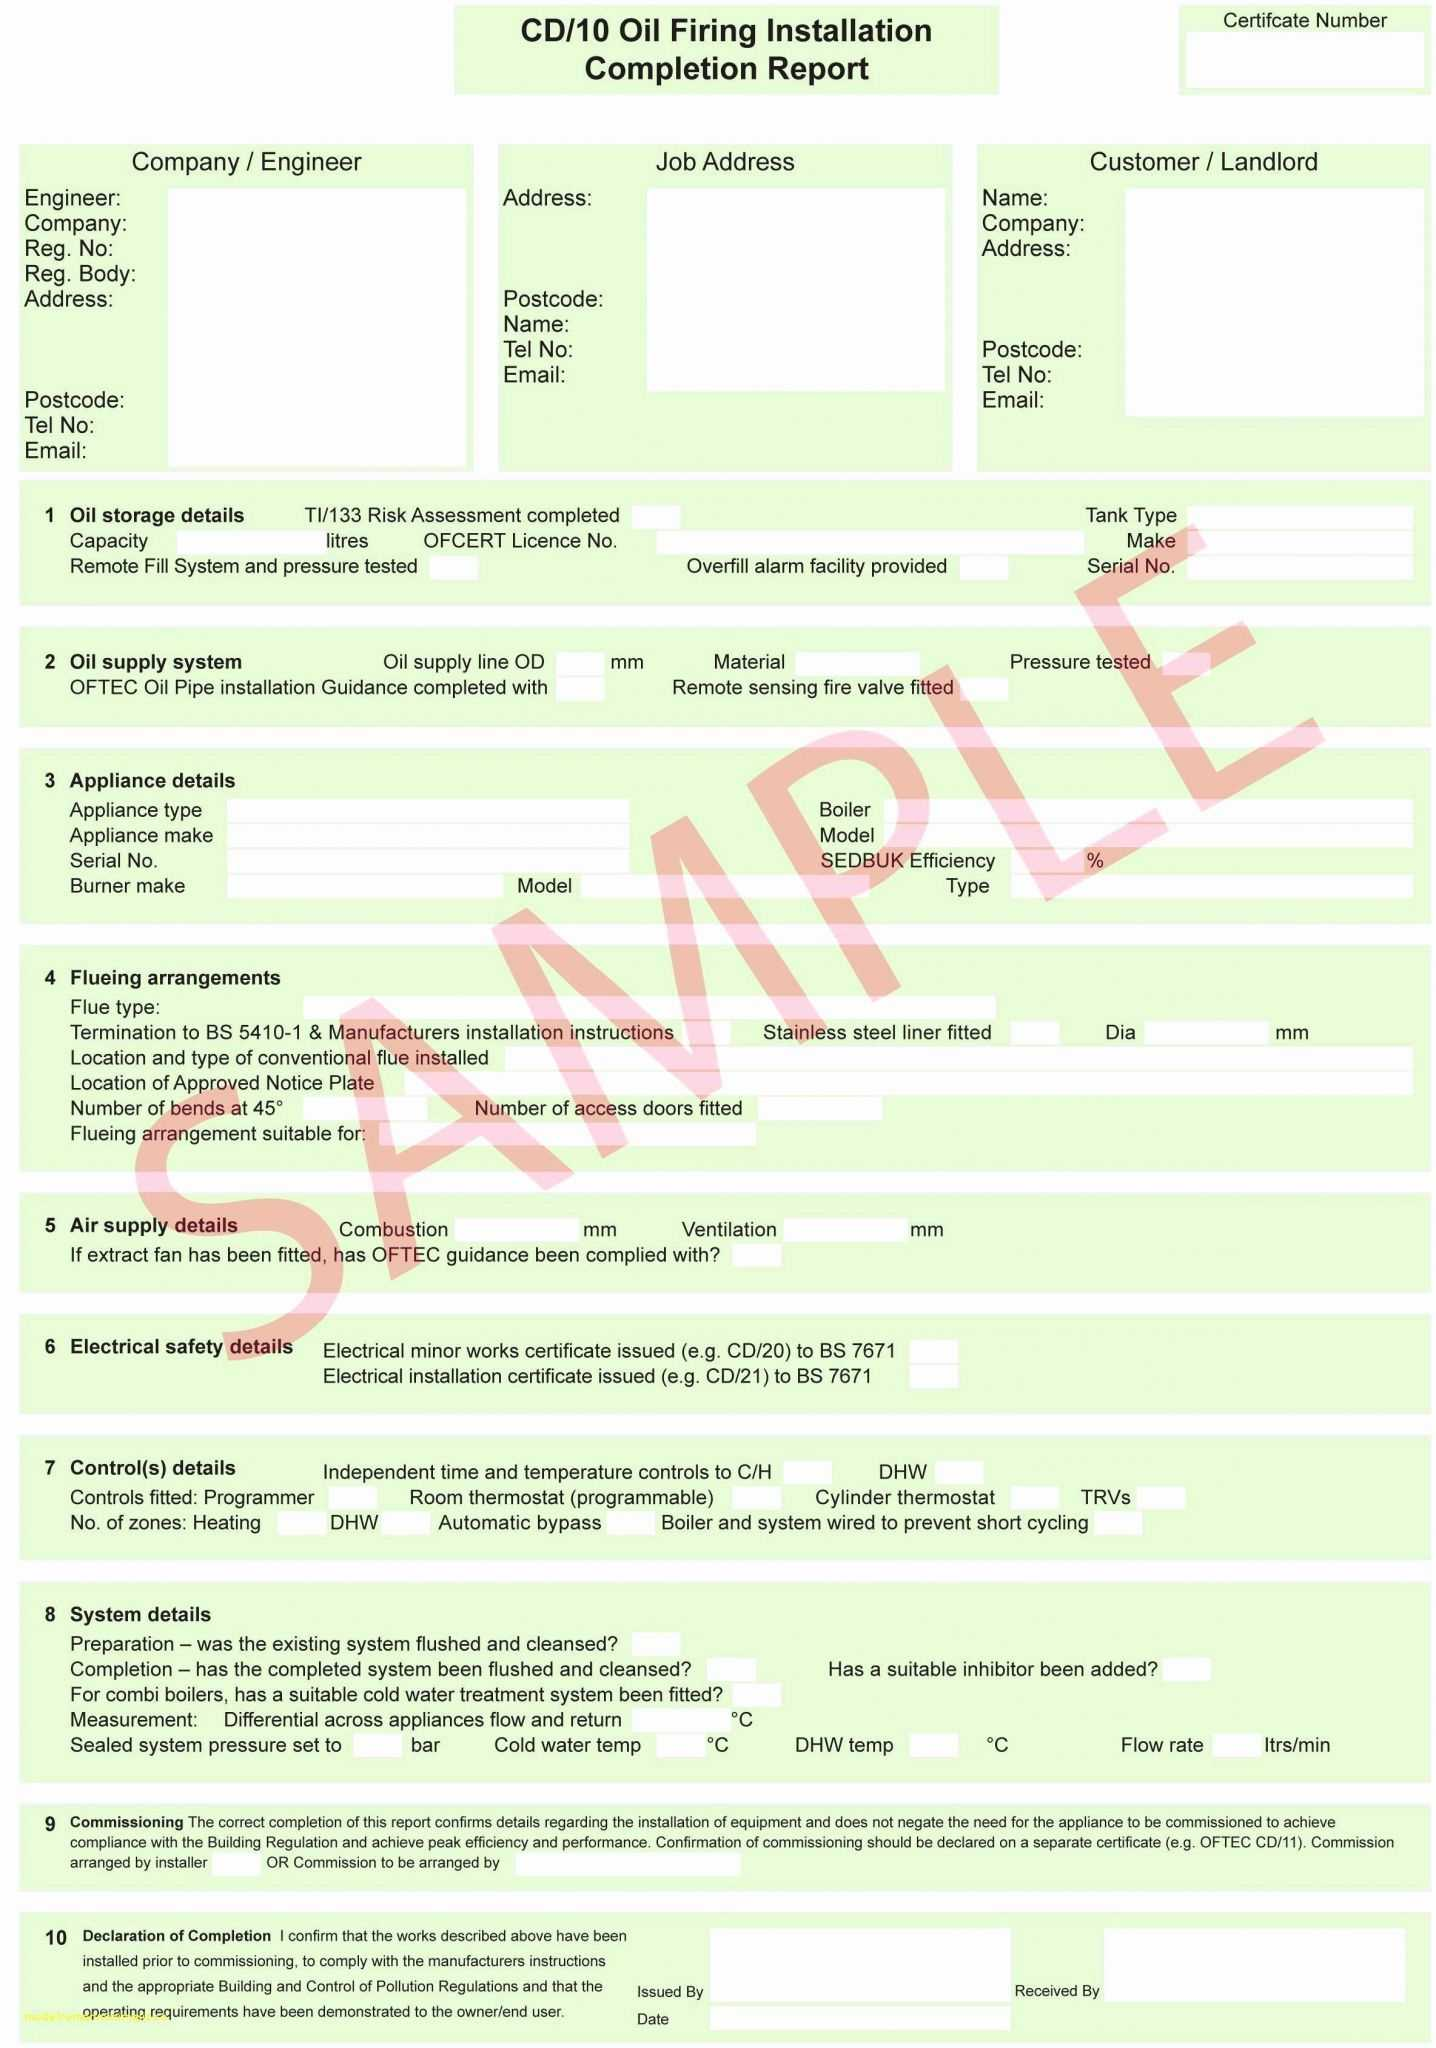 No Certificate Templates Could Be Found - Professional Template Within No Certificate Templates Could Be Found